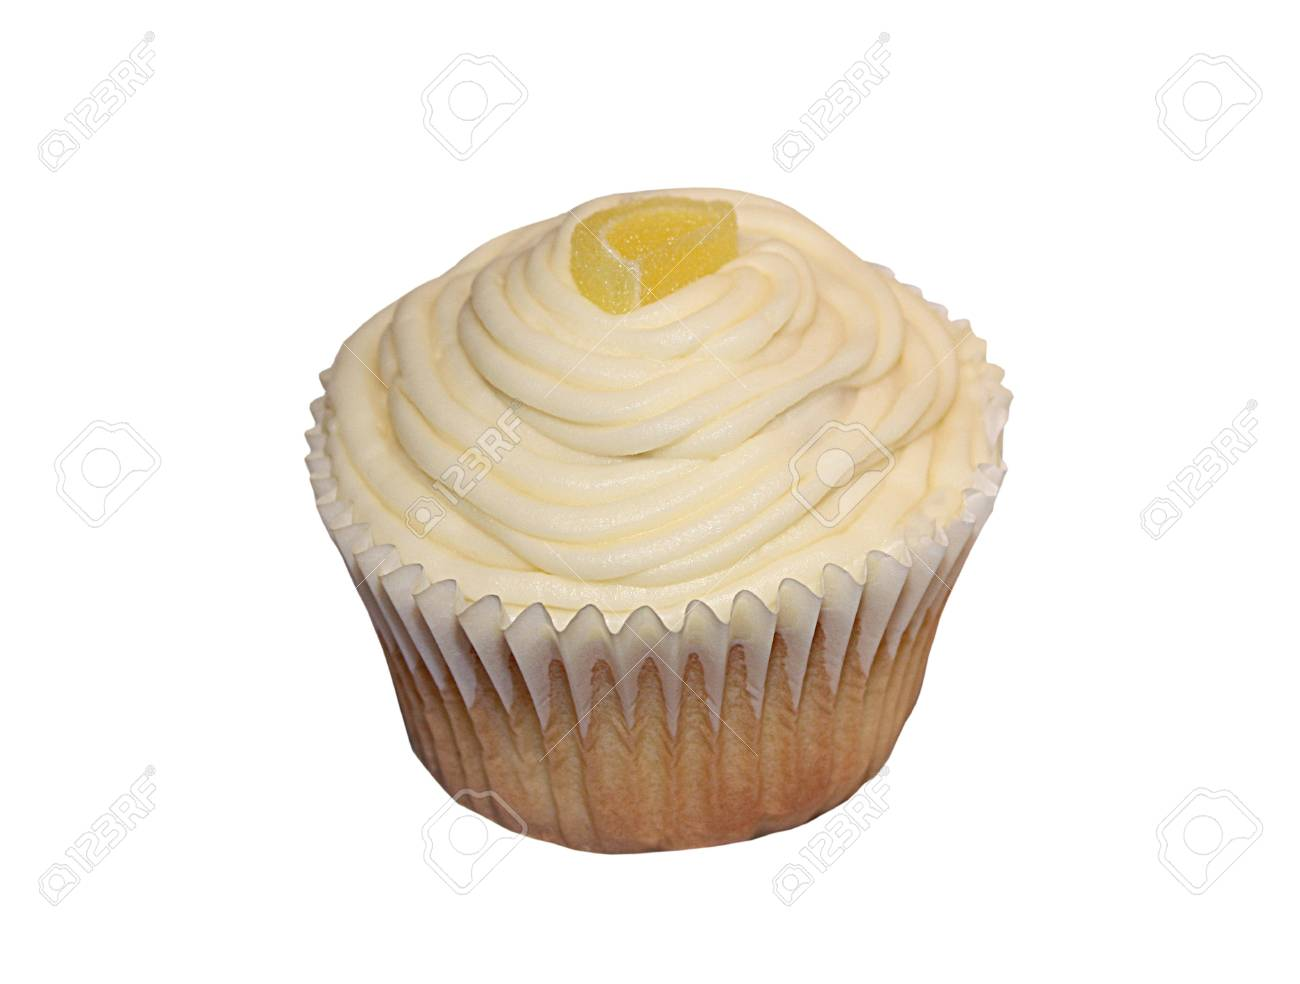 A Delicious Lemon Flavoured Iced Muffin Cup Cake. Stock Photo - 8438888